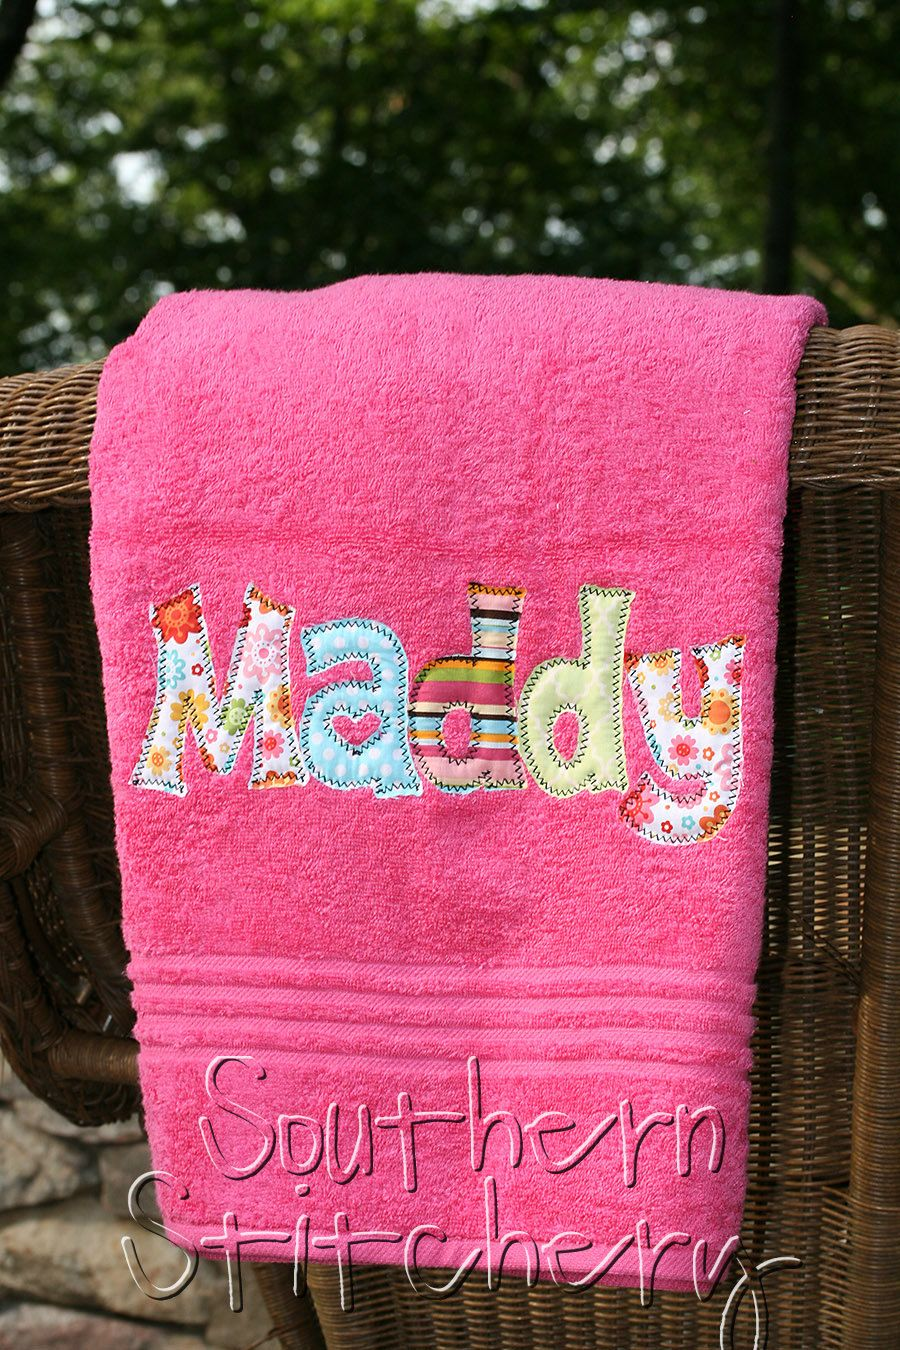 Applique Name Towel Personalized Bath Towel By Southernstitchery